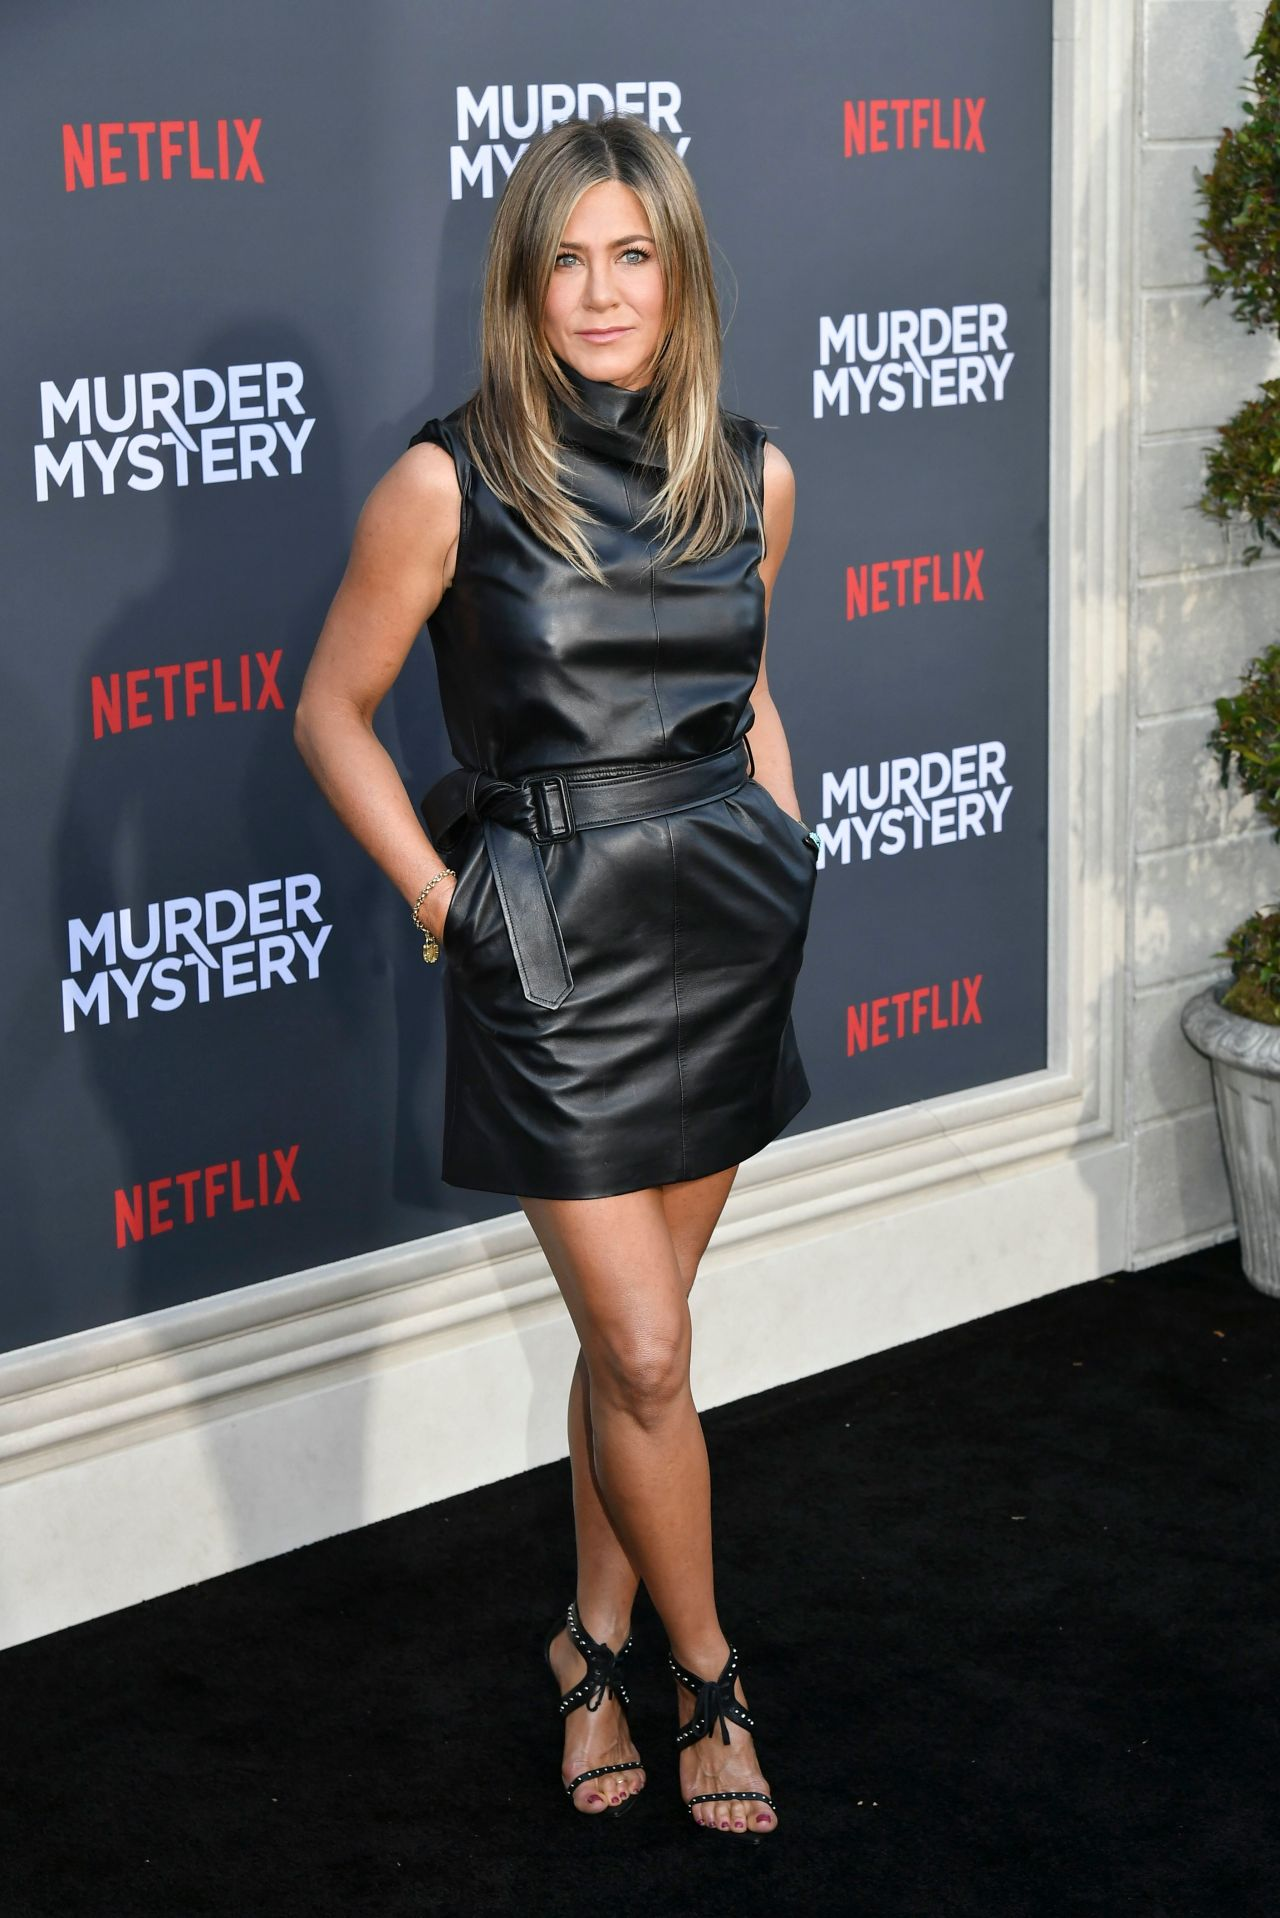 Stunning cougar Jennifer Aniston at Murder Mystery premiere in LA